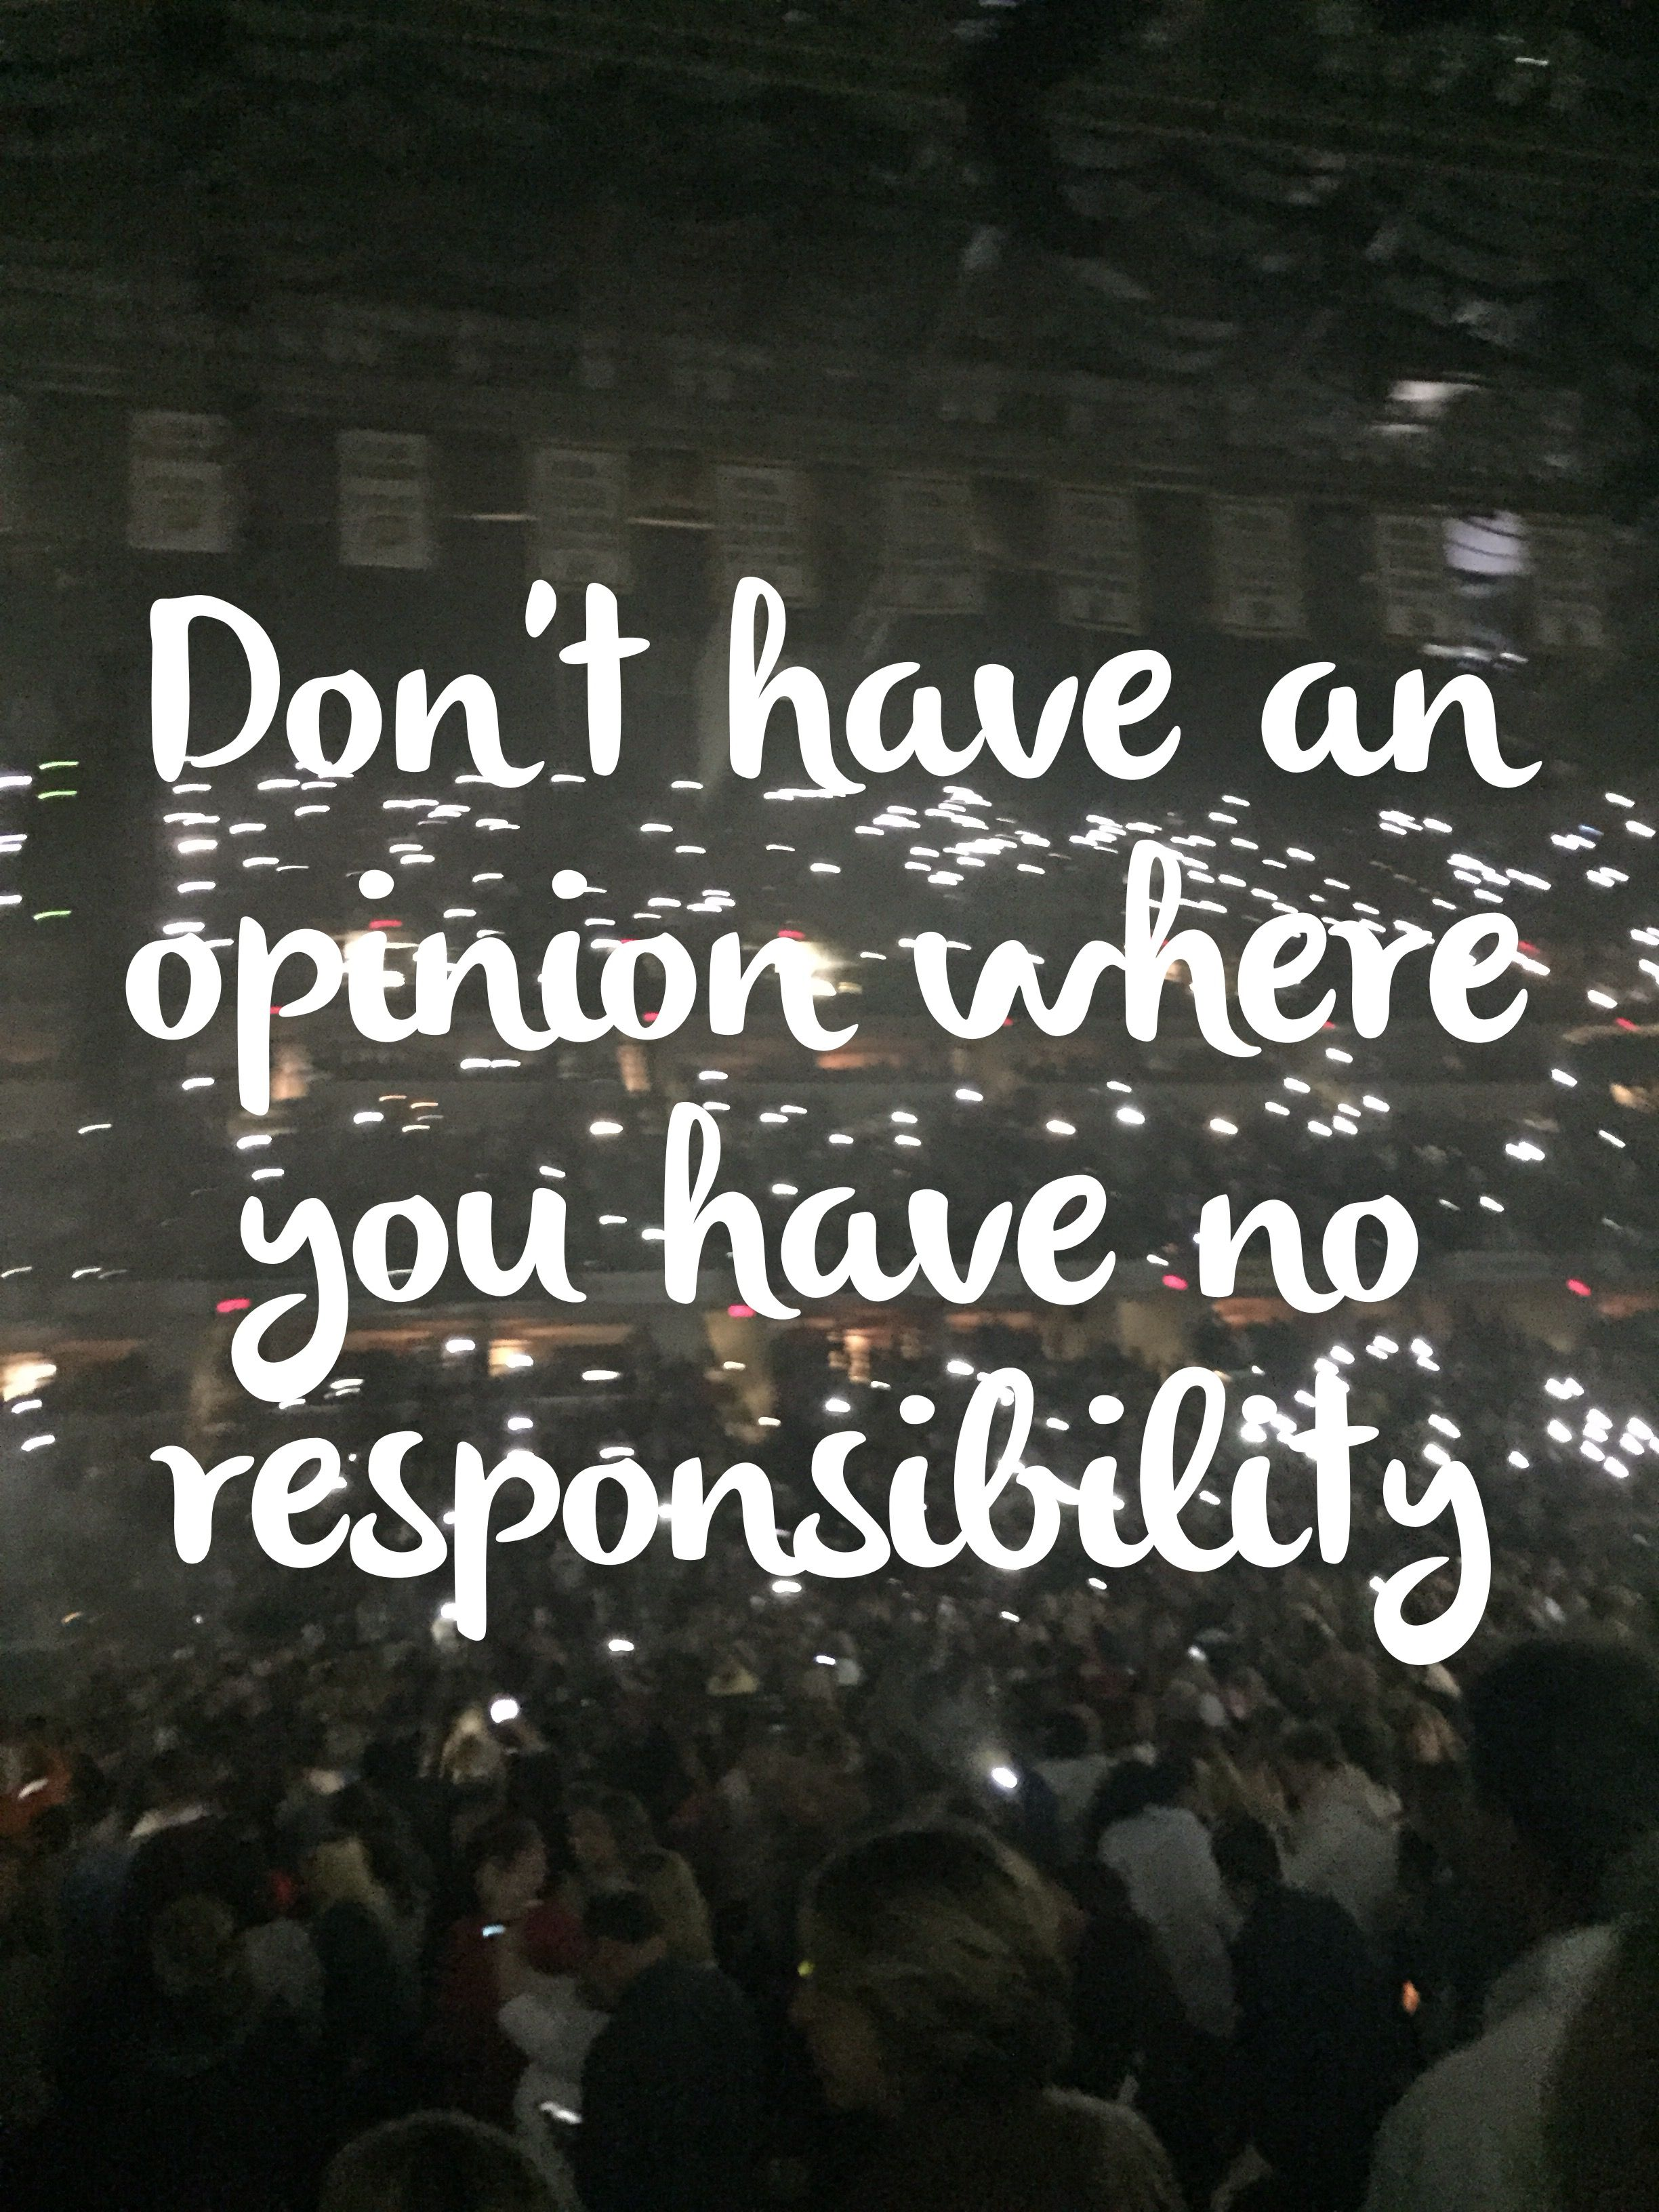 Don't have an opinion where you have no responsibility